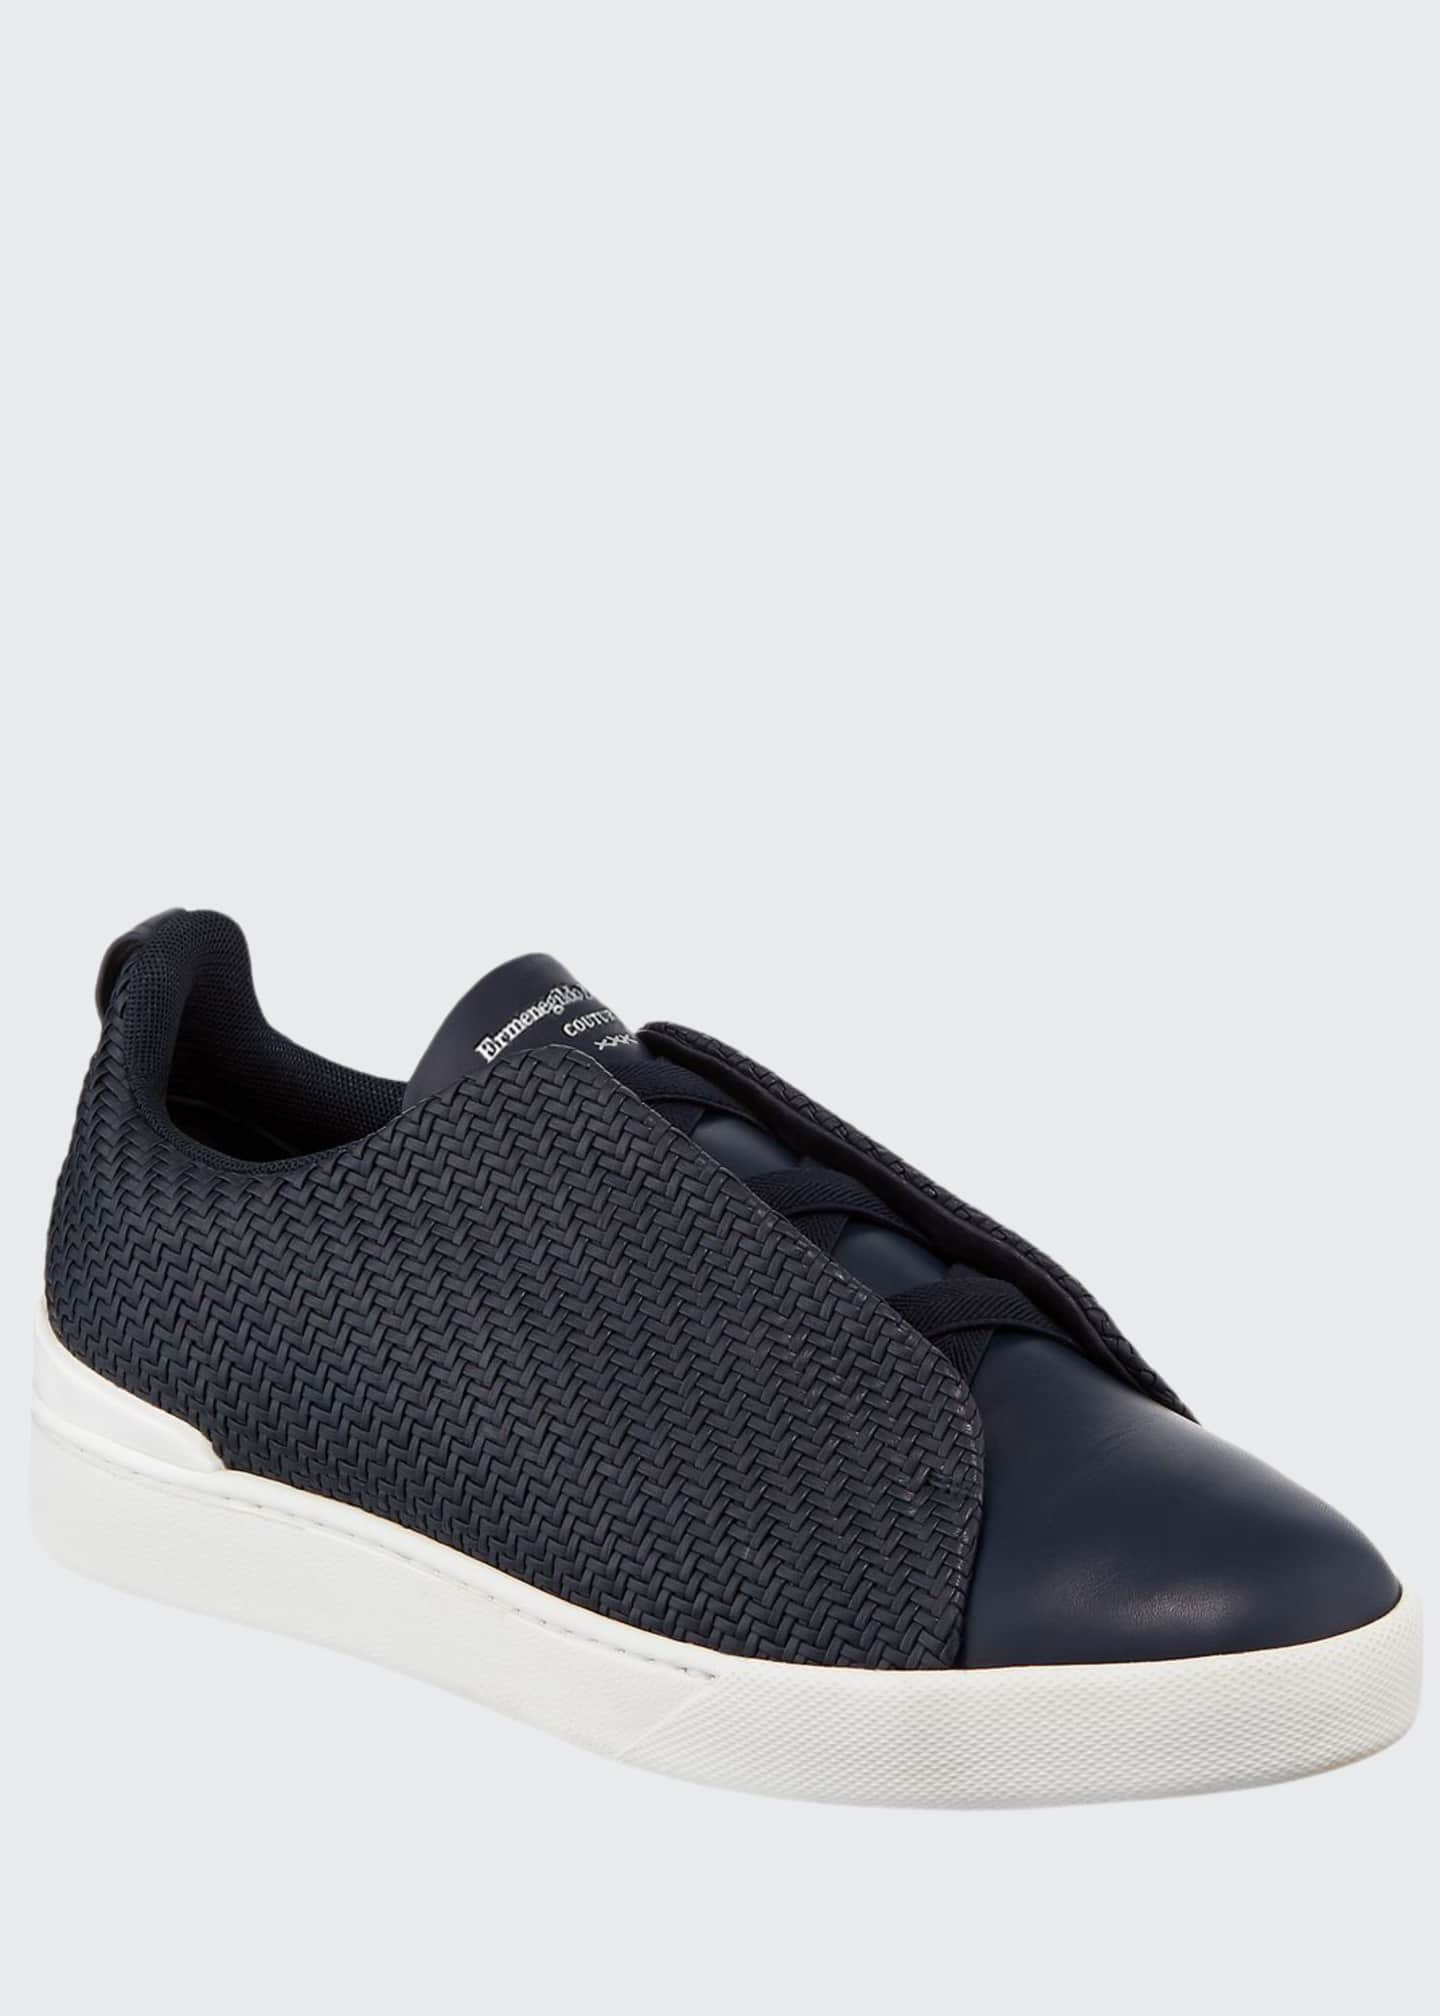 Ermenegildo Zegna Men's Triple Stitch Pelle Low-Top Sneakers